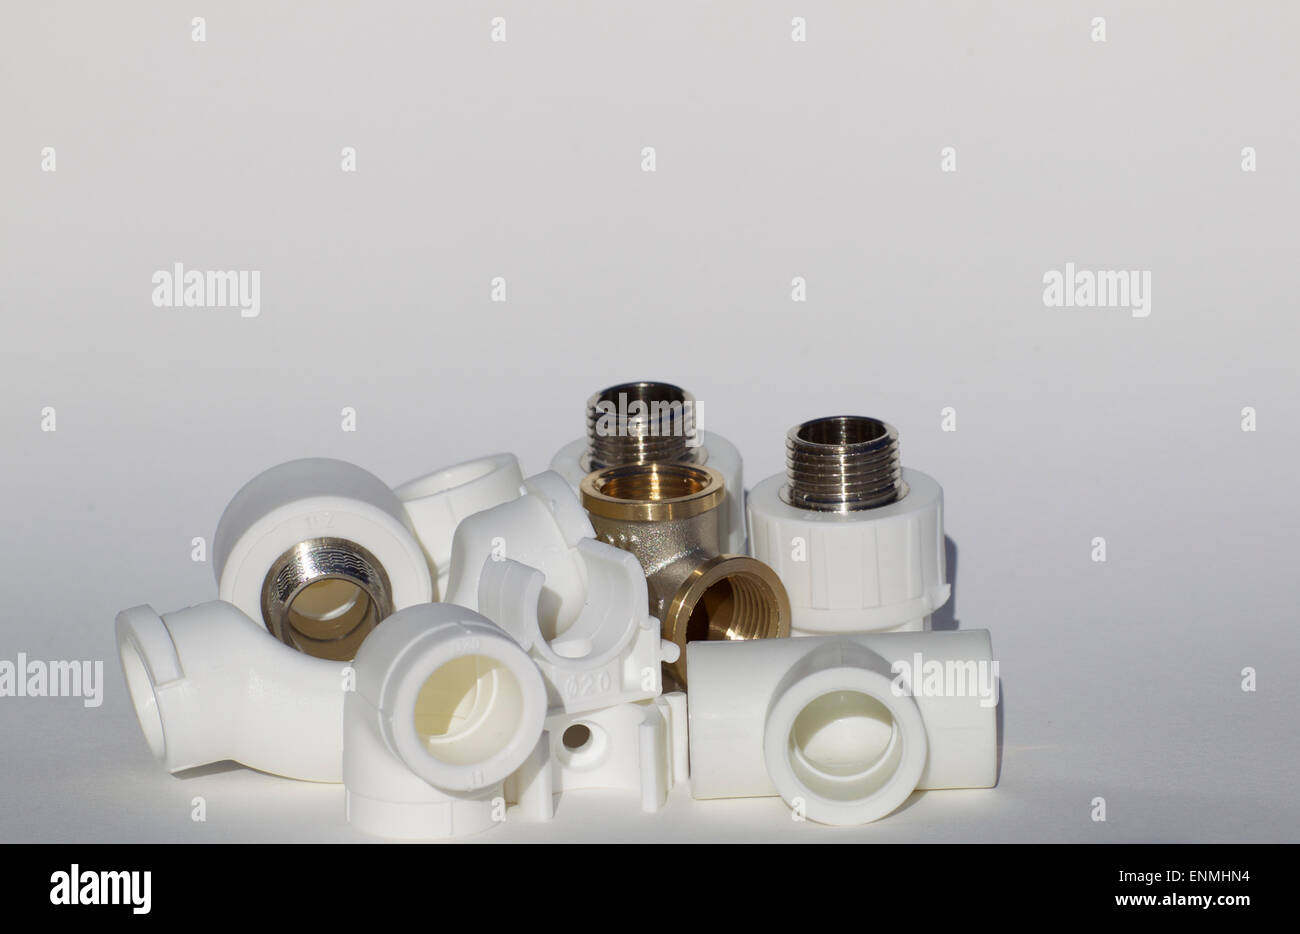 various fittings for water supply pipelines - Stock Image